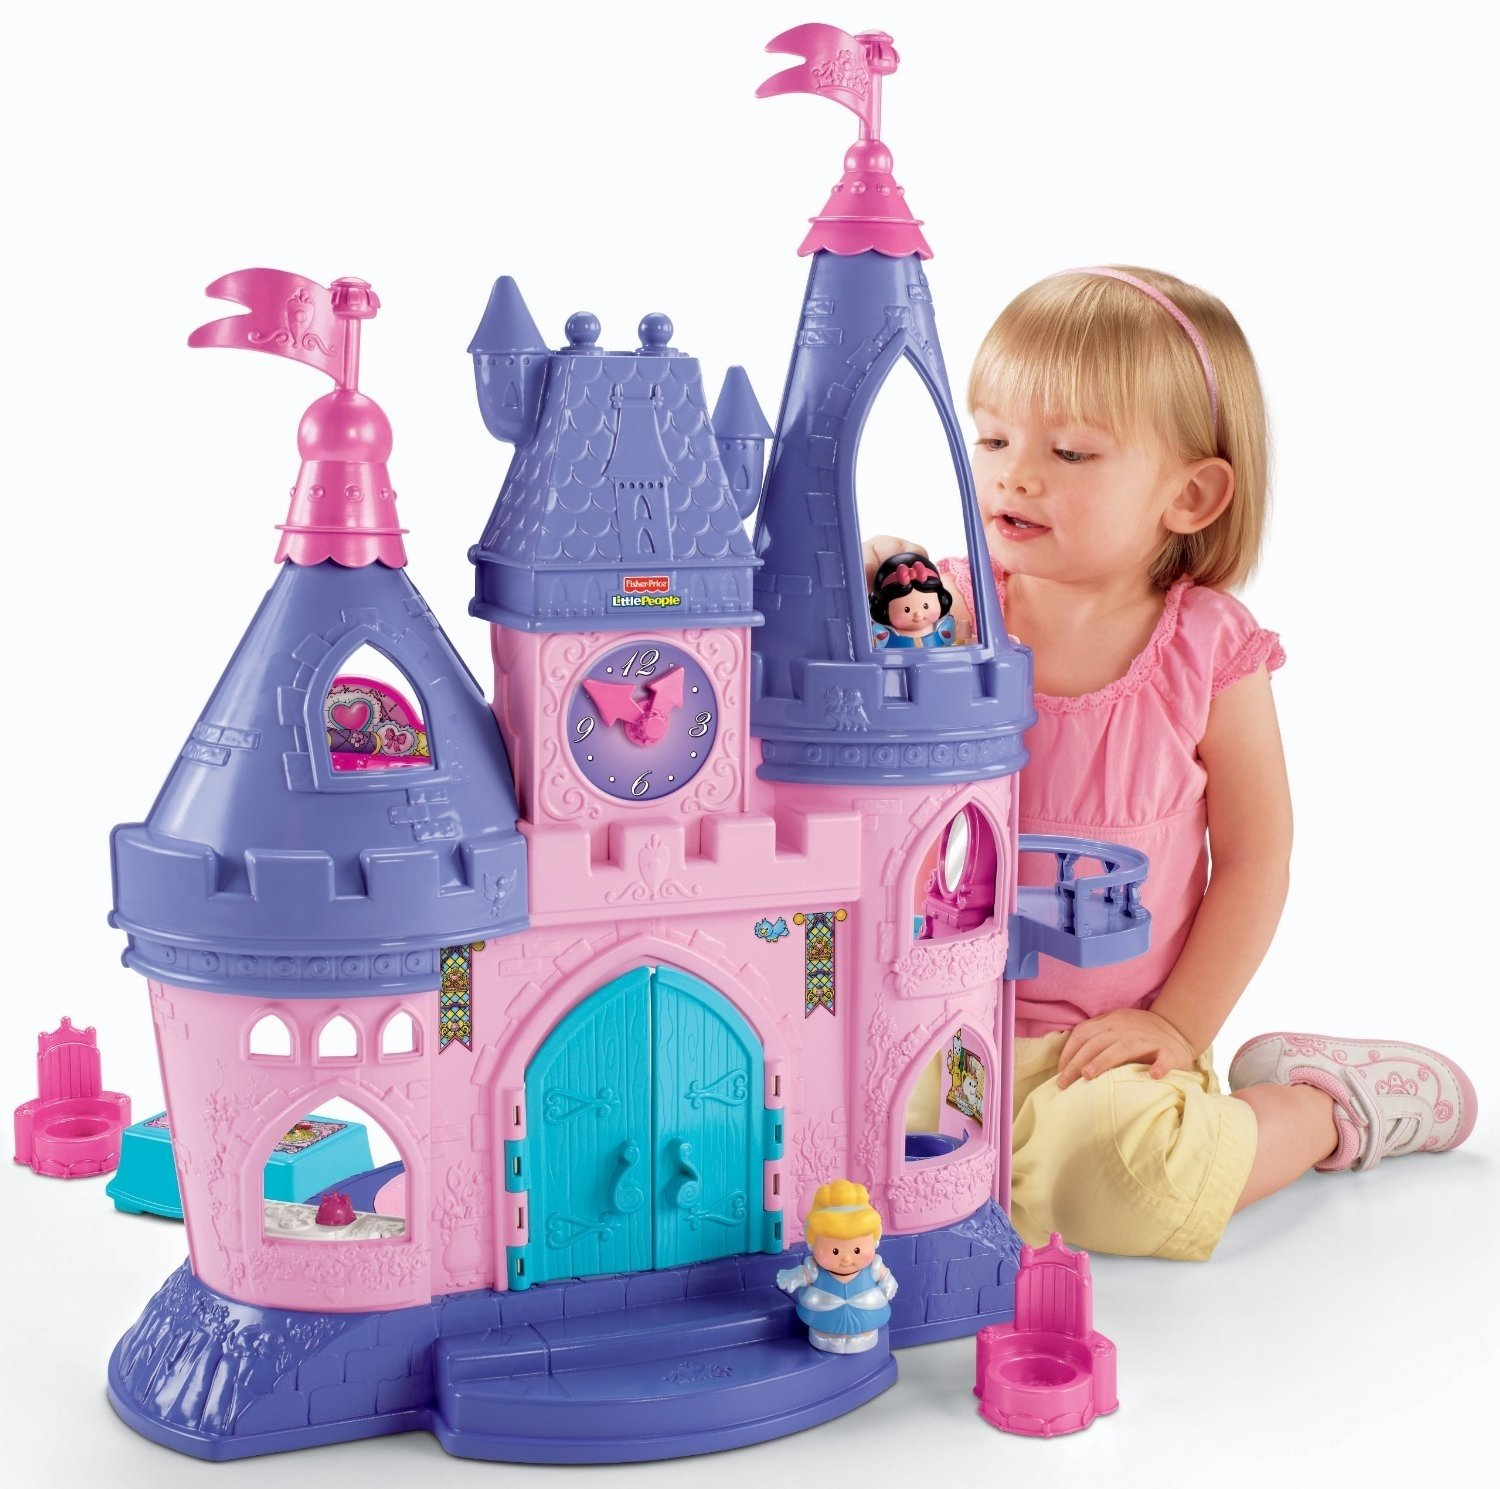 10 Famous Gift Ideas For A 3 Year Old Girl best gifts for 2 year old girls in 2017 disney princess songs 1 2020